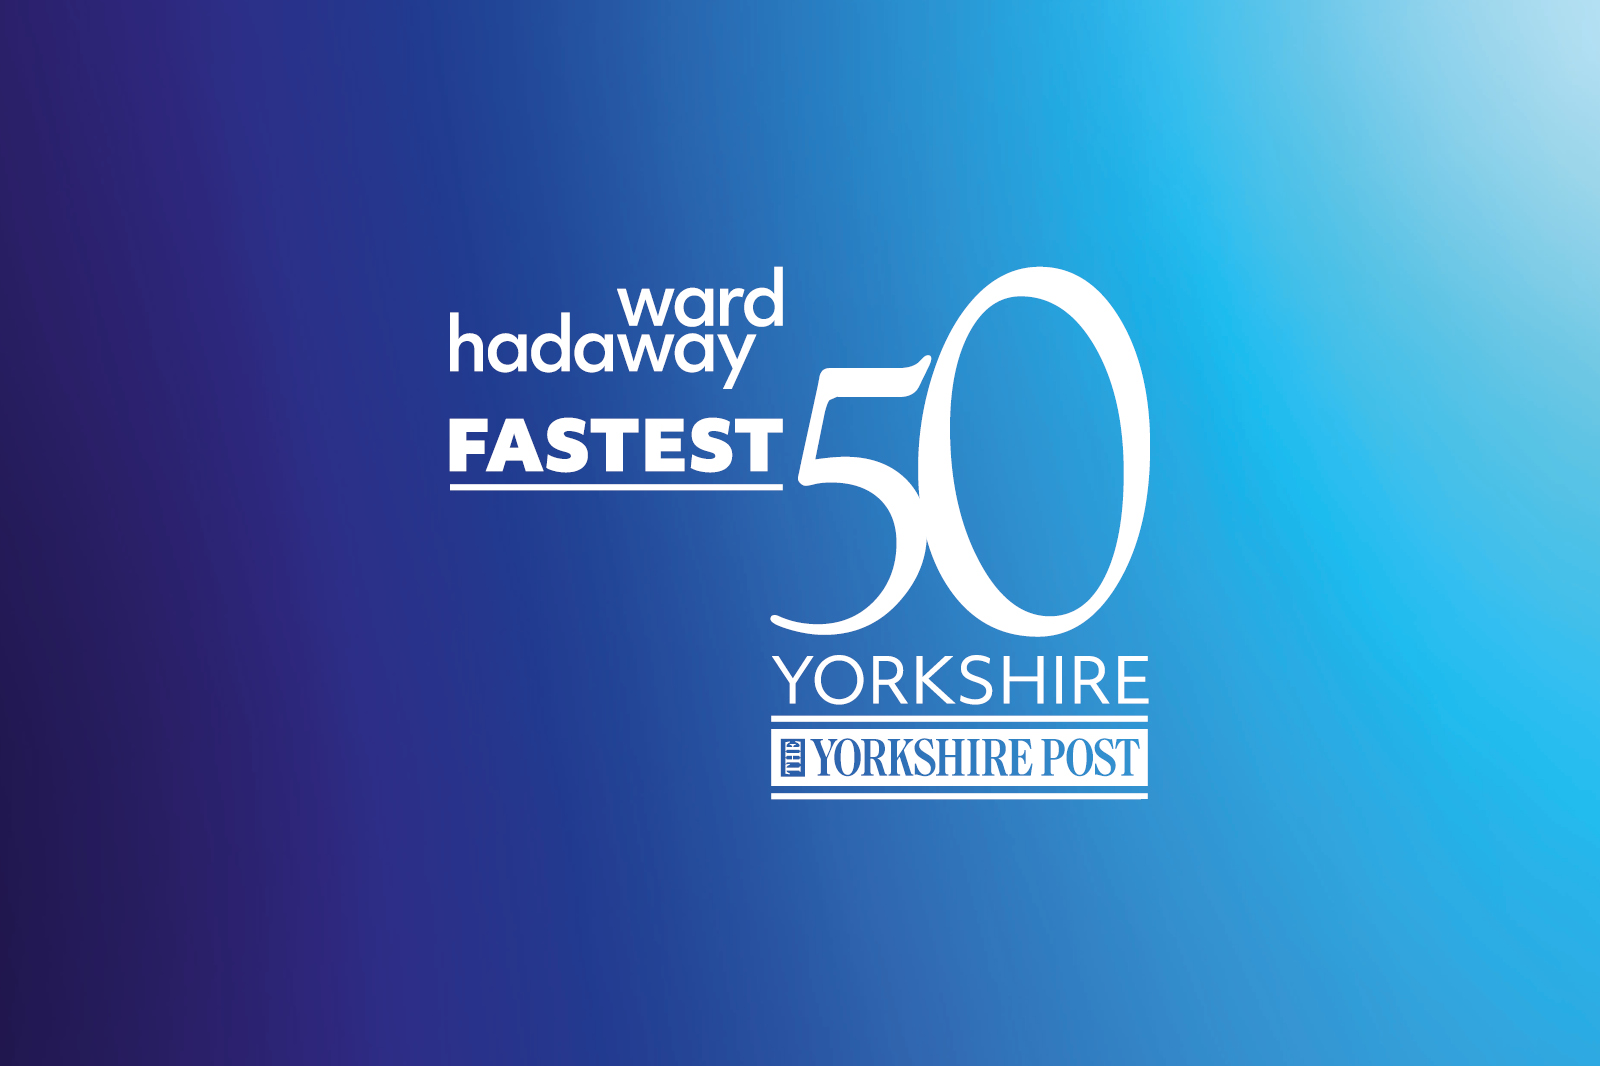 Ward Hadaway Fastest 50 North East - Yorkshire post